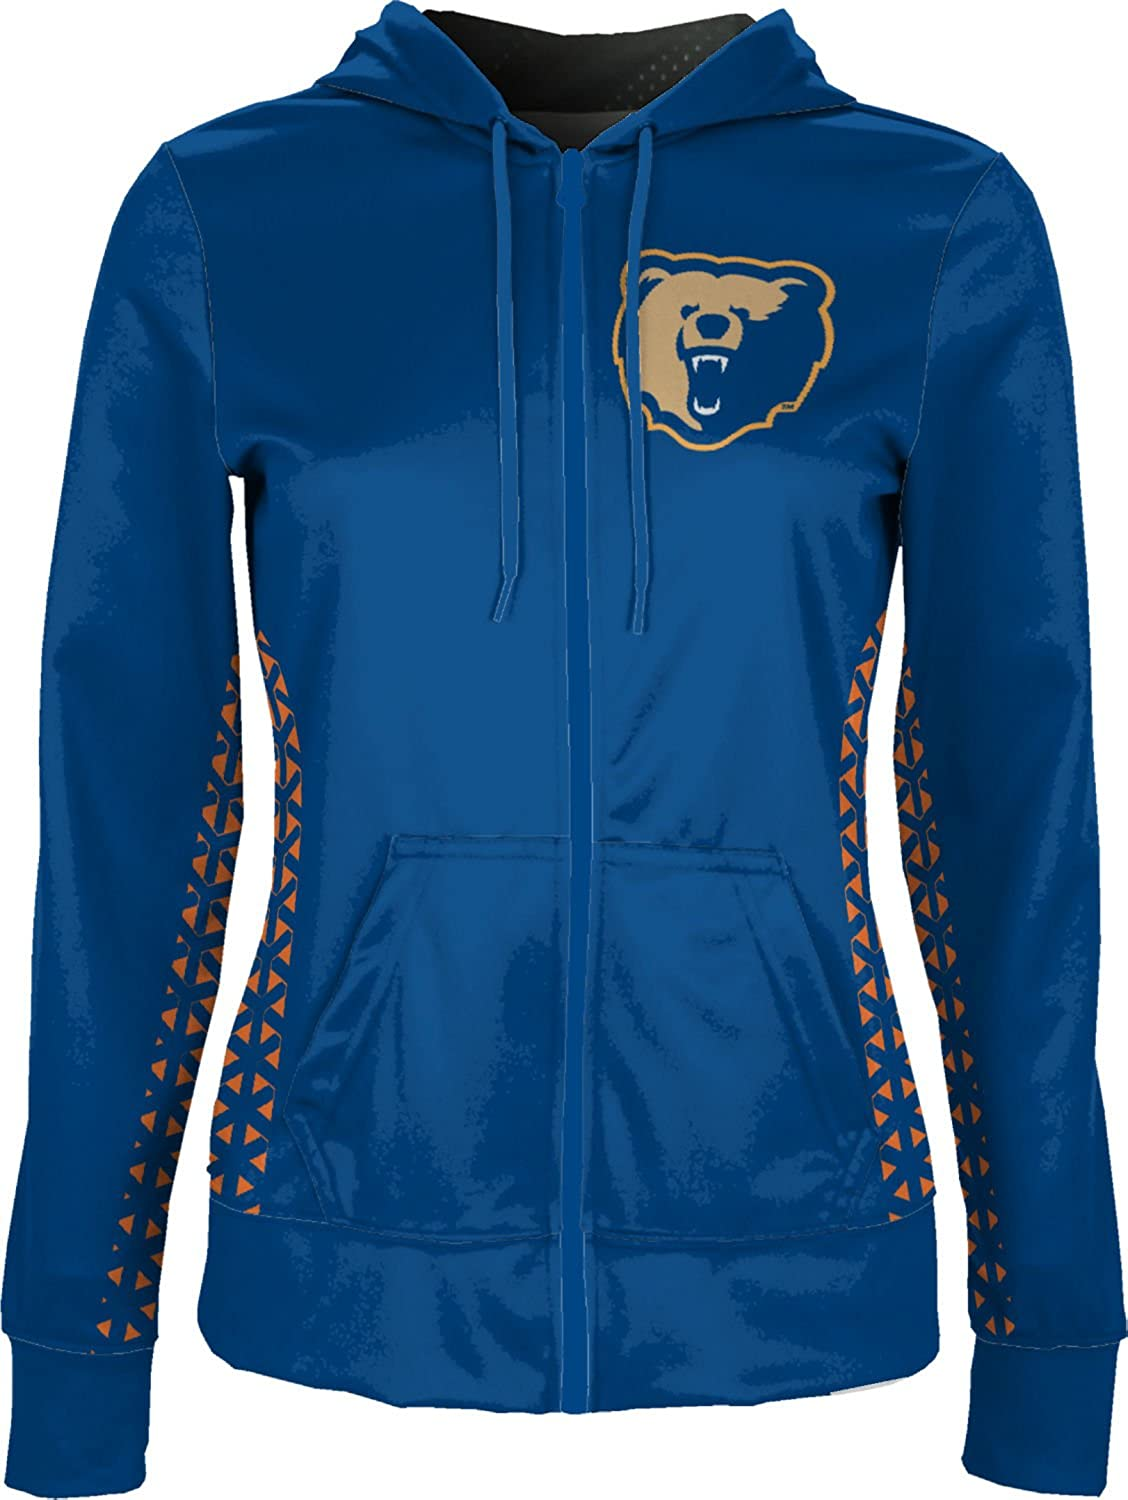 Geo ProSphere Morgan State University Girls Zipper Hoodie School Spirit Sweatshirt